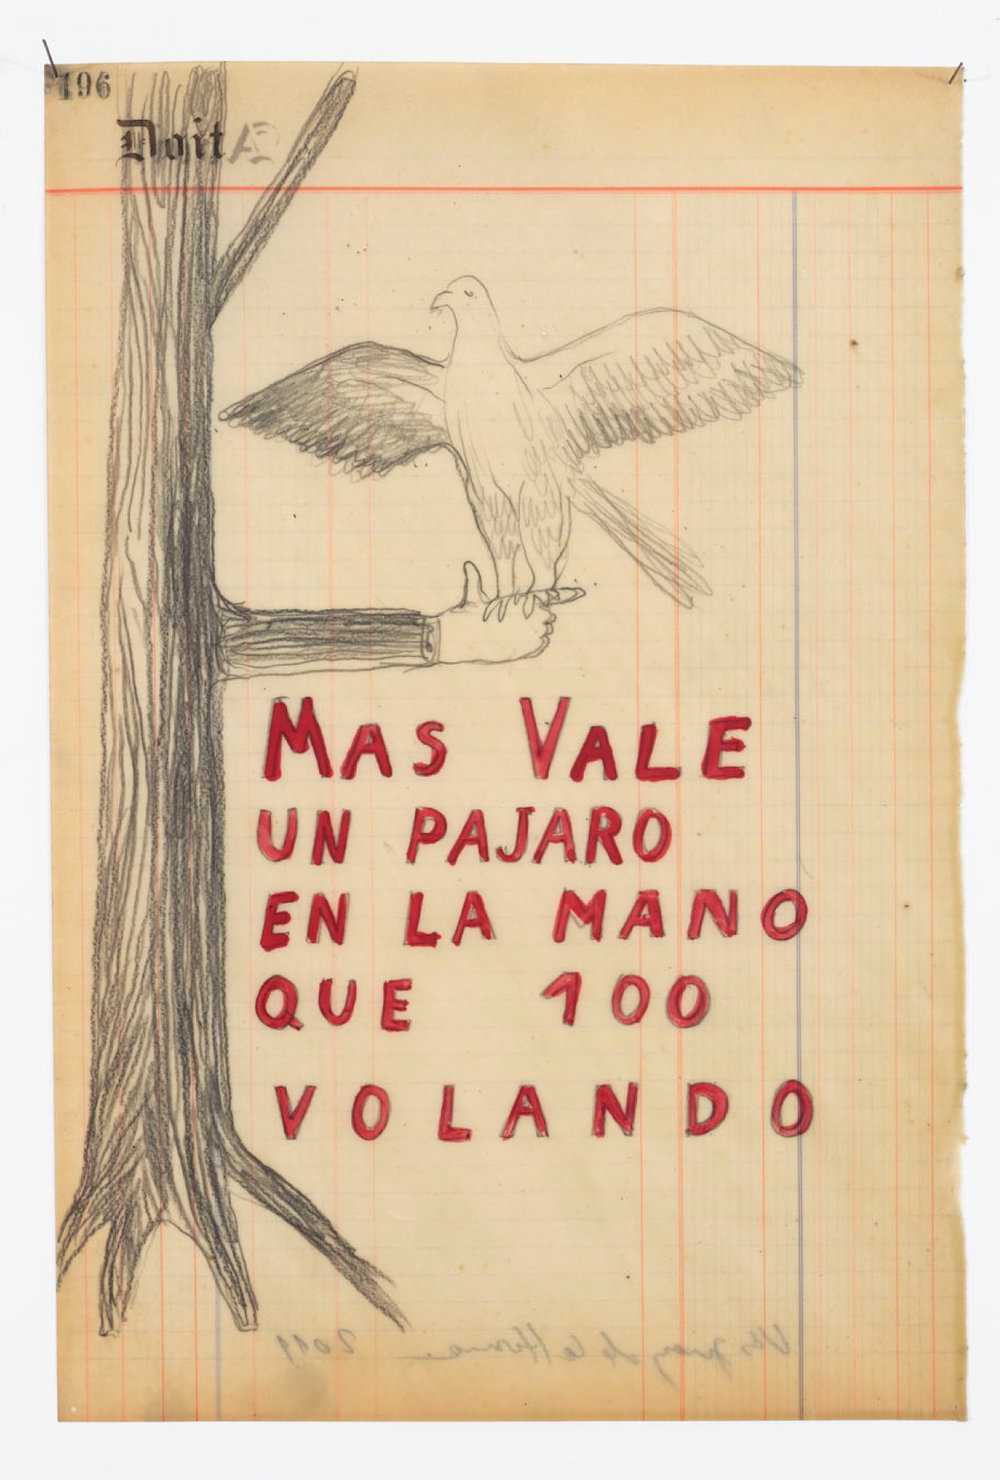 Sandra Vasquez De La Horra,  Mas vale un pajaro en el mano que 100 (More valuable is a bird in the hand than 100 flying),  2011, Wax and graphite on ledger paper, 15 3/8h x 10 1/4w in